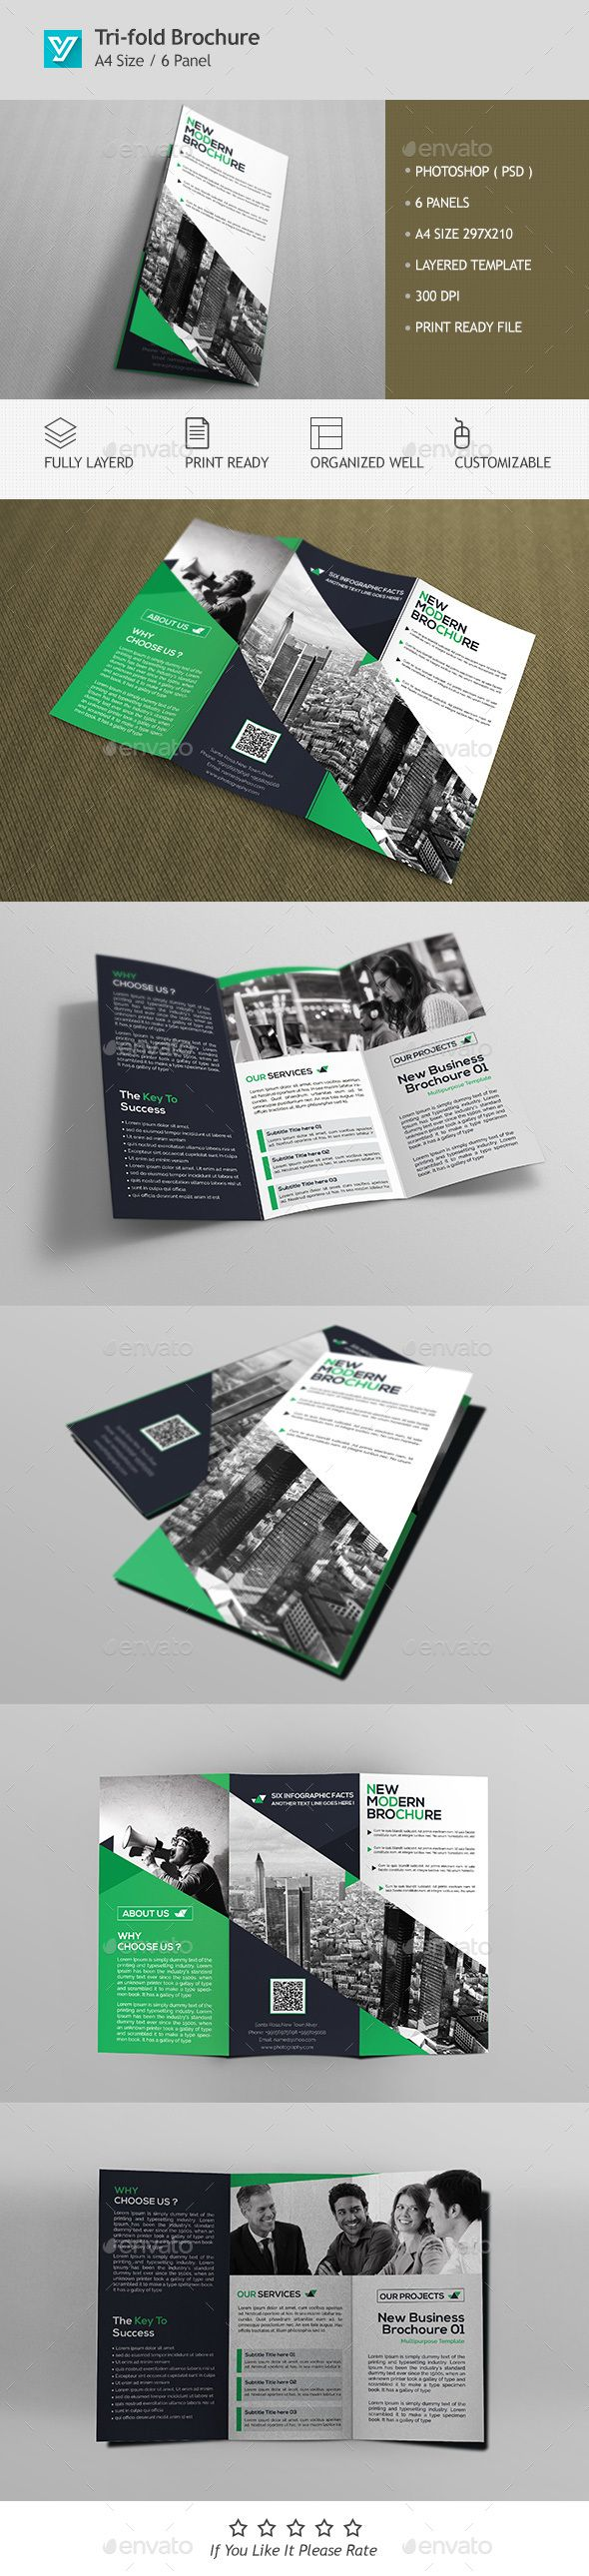 Fine 1 Page Website Template Thick 1 Week Calendar Template Round 10 Envelope Template 2 Circle Label Template Youthful 2 Page Resume Format Header Dark20 Piece Puzzle Template 25  Best Ideas About Tri Fold On Pinterest | Tri Fold Brochure ..